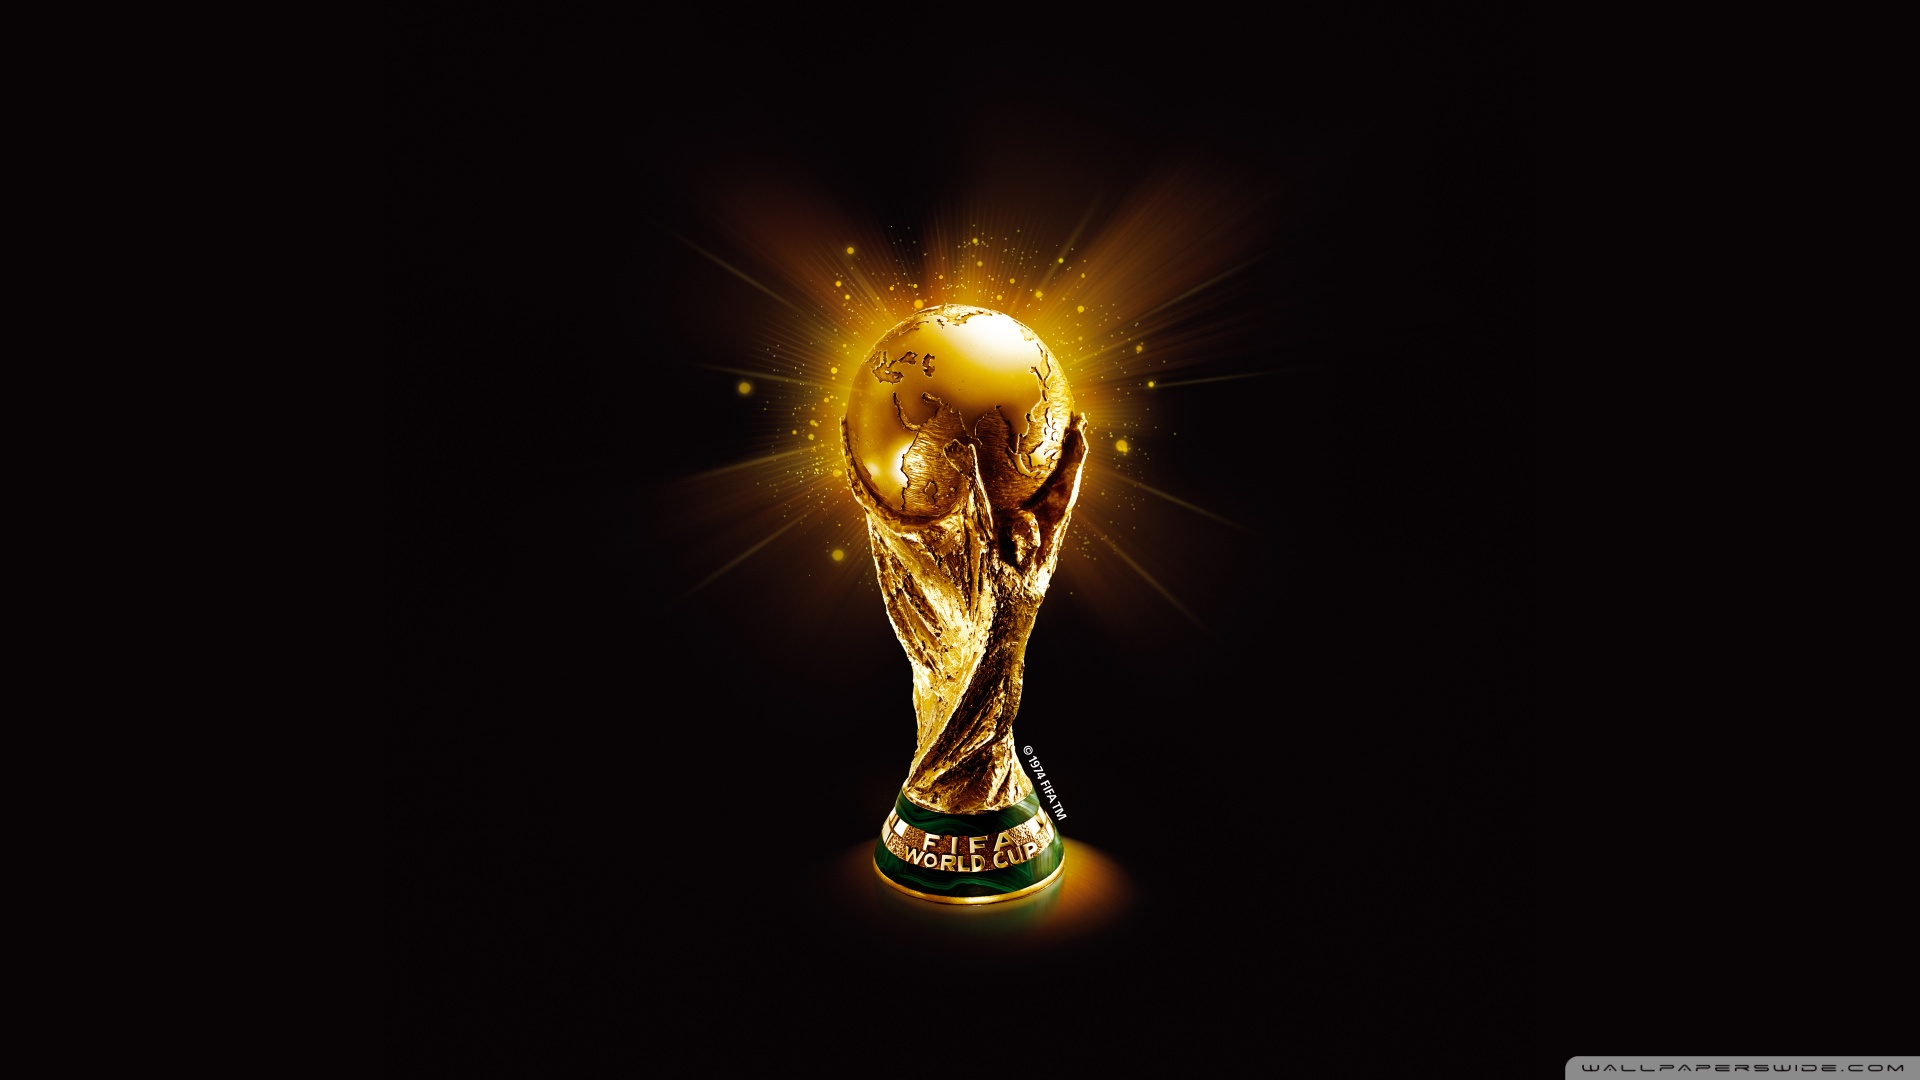 World Cup Wallpapers